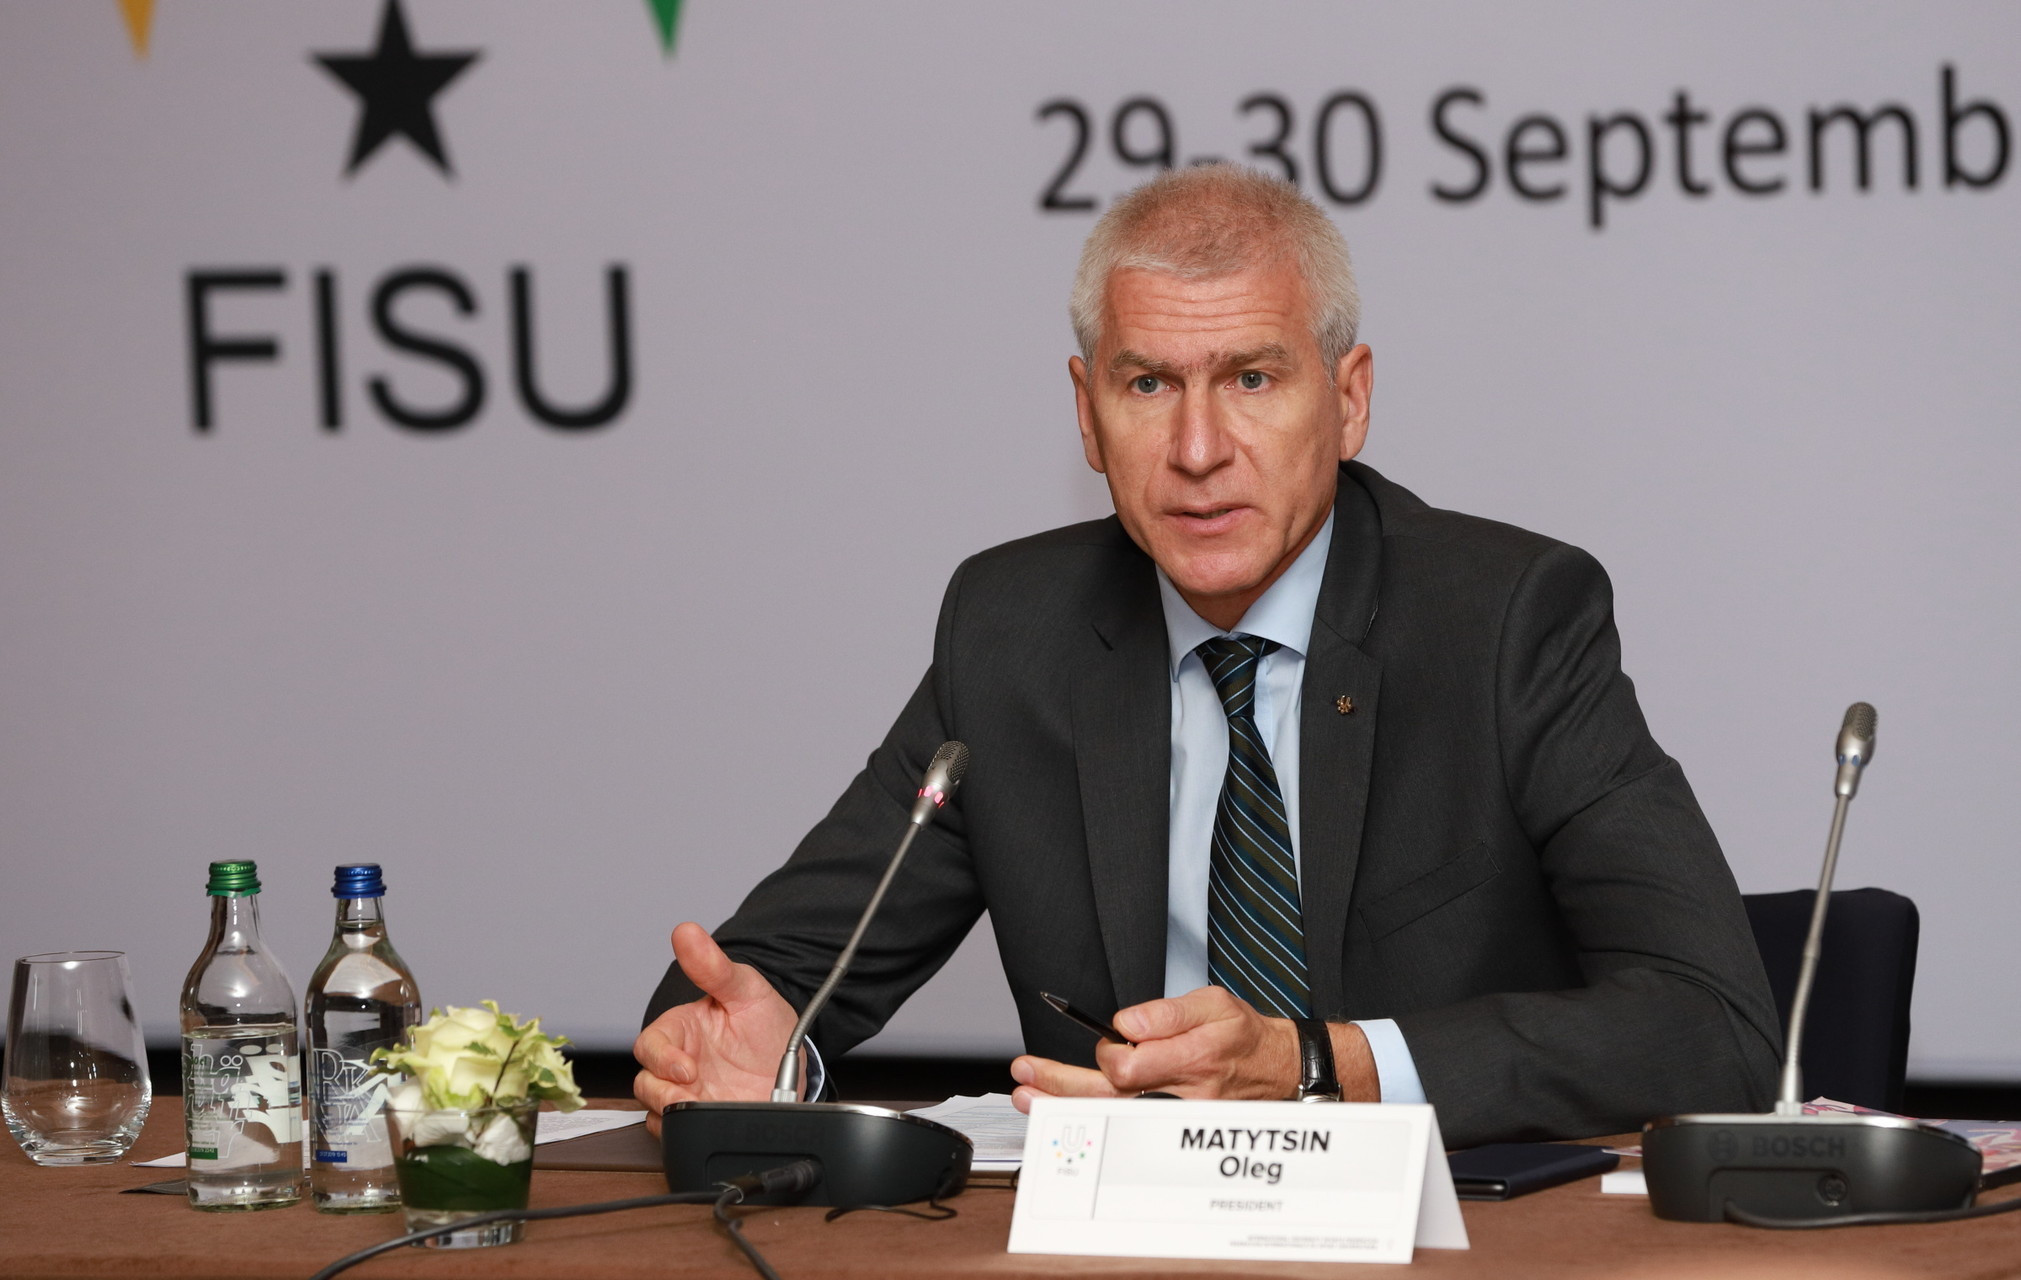 FISU President Matysin has thanked everyone at the body for their work in 2018 ©FISU